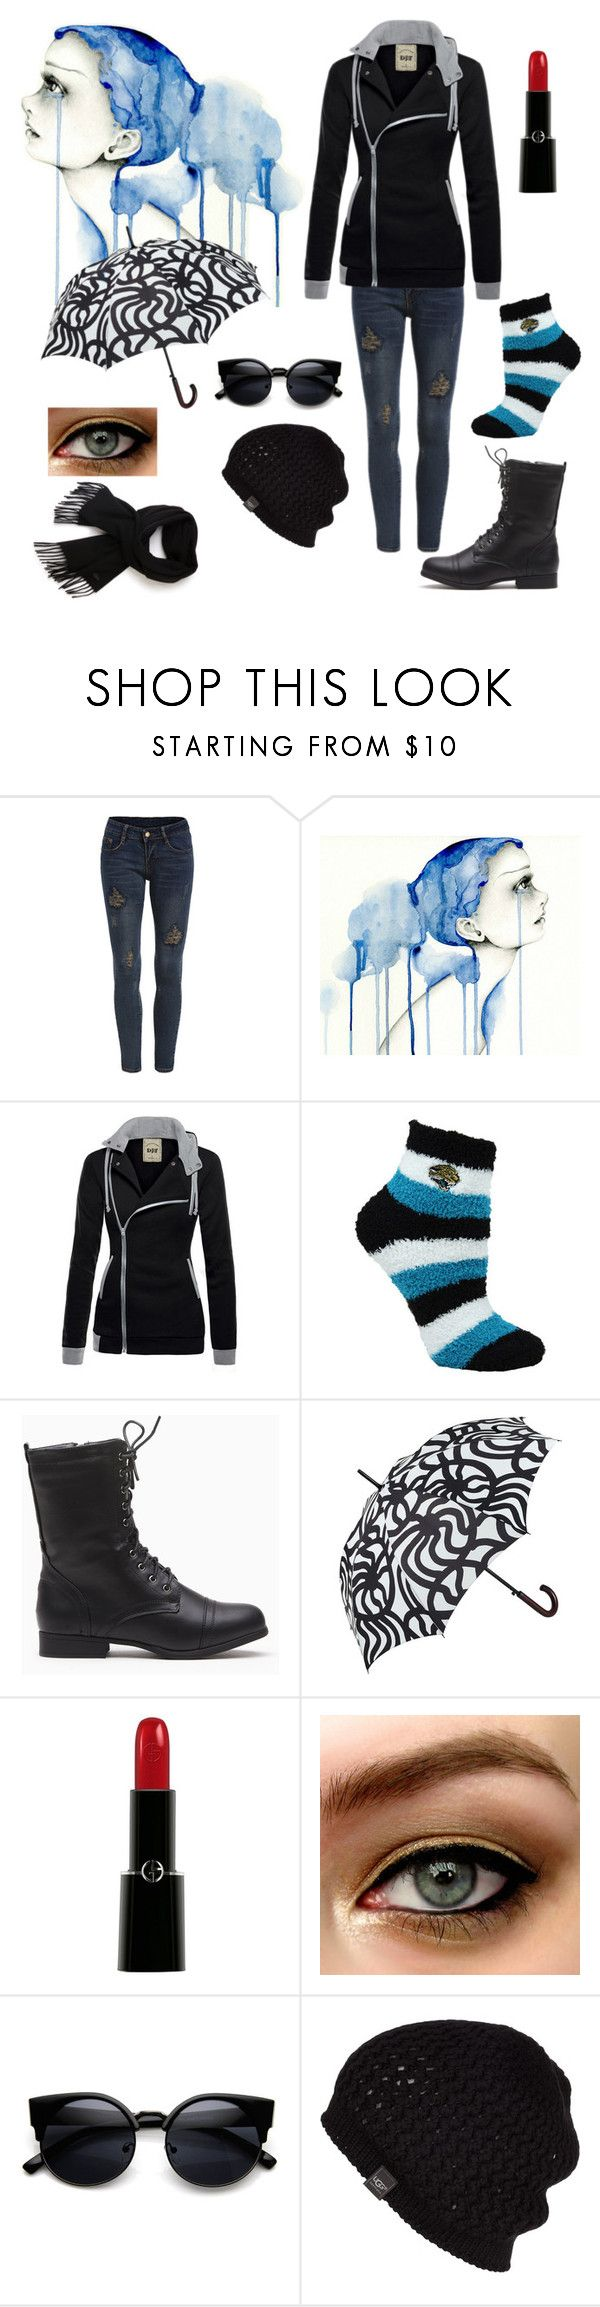 """Rainy day"" by gracelovesanimals ❤ liked on Polyvore featuring For Bare Feet, Marimekko, Giorgio Armani, UGG Australia, Lacoste, women's clothing, women's fashion, women, female and woman"